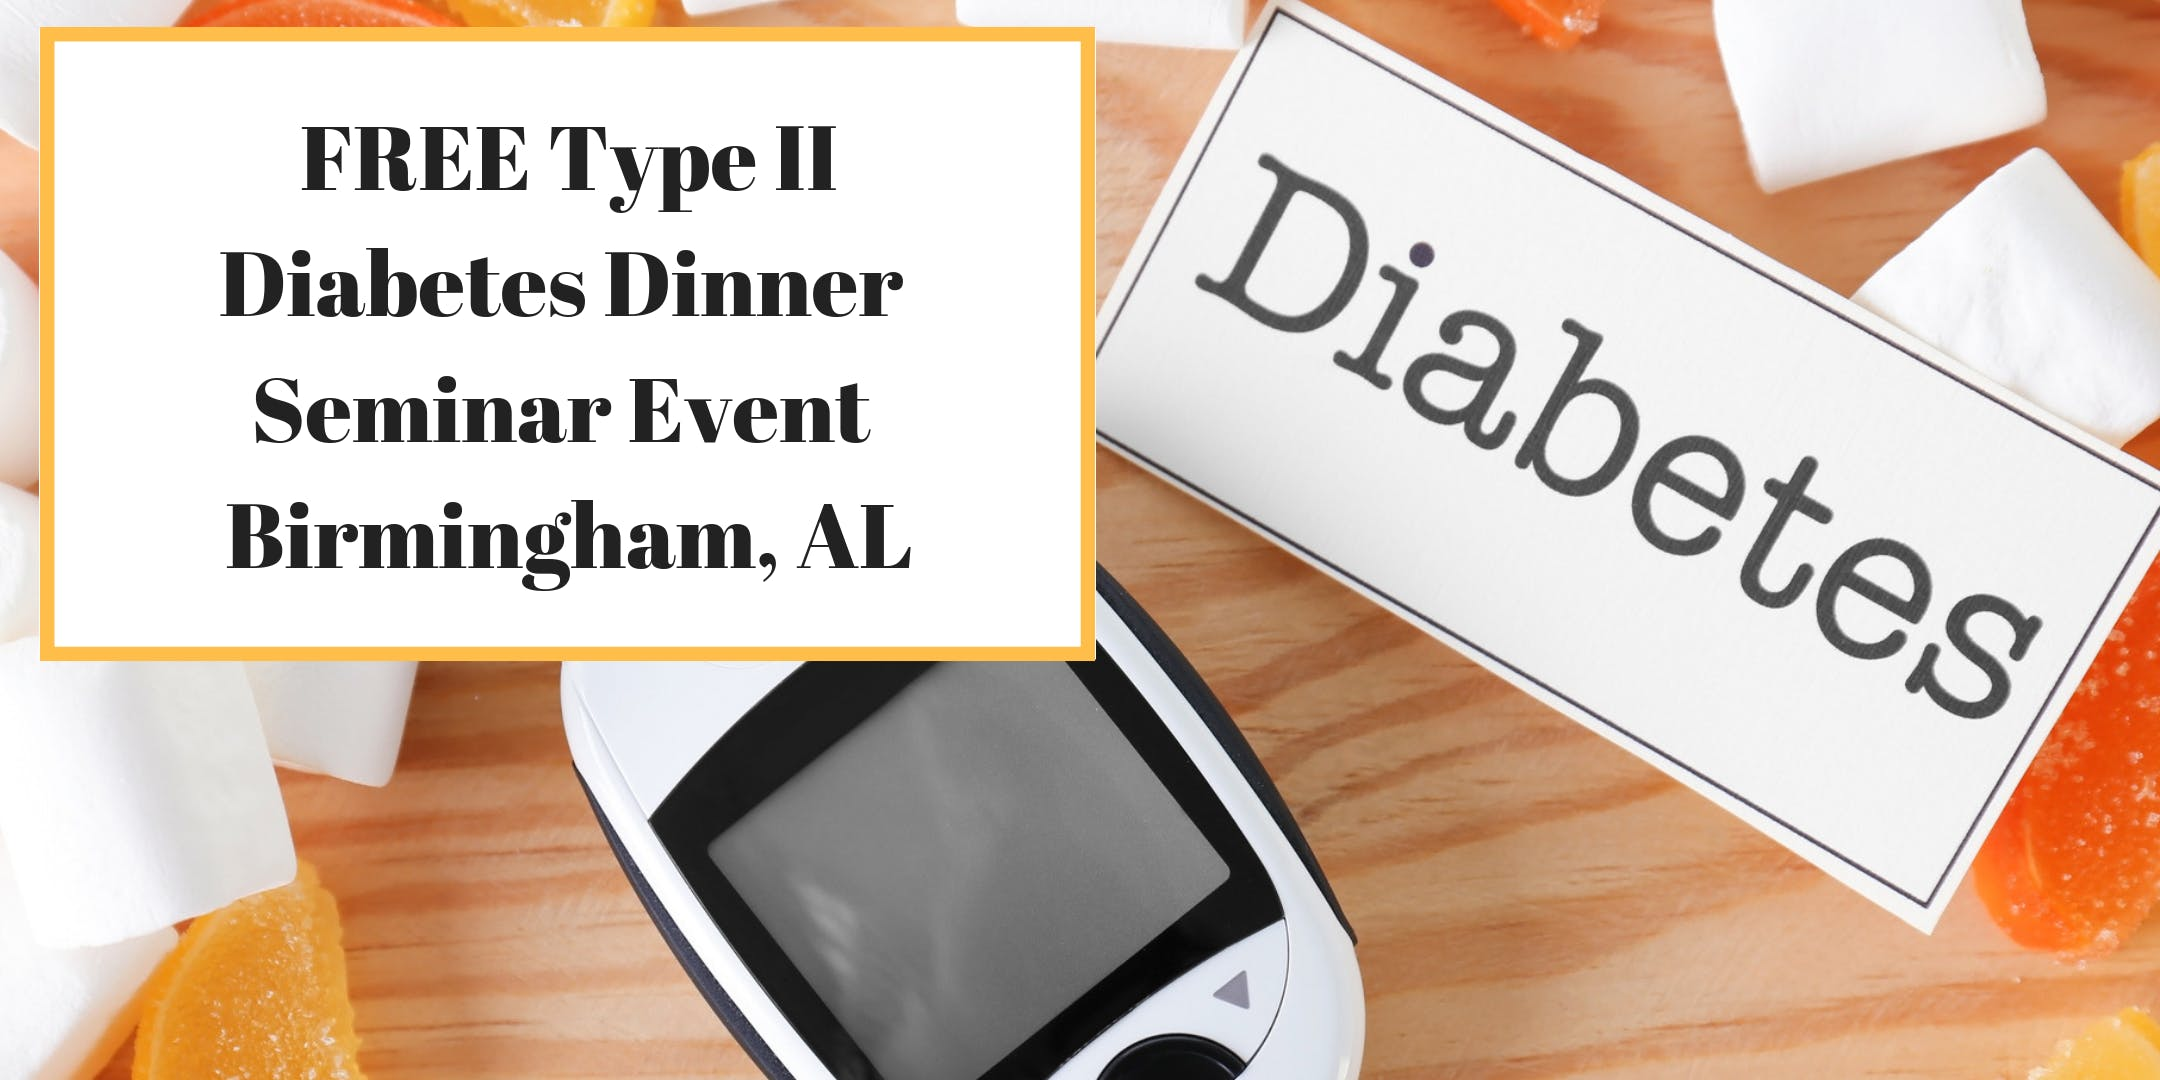 FREE Type II Diabetes Dinner Seminar Event -